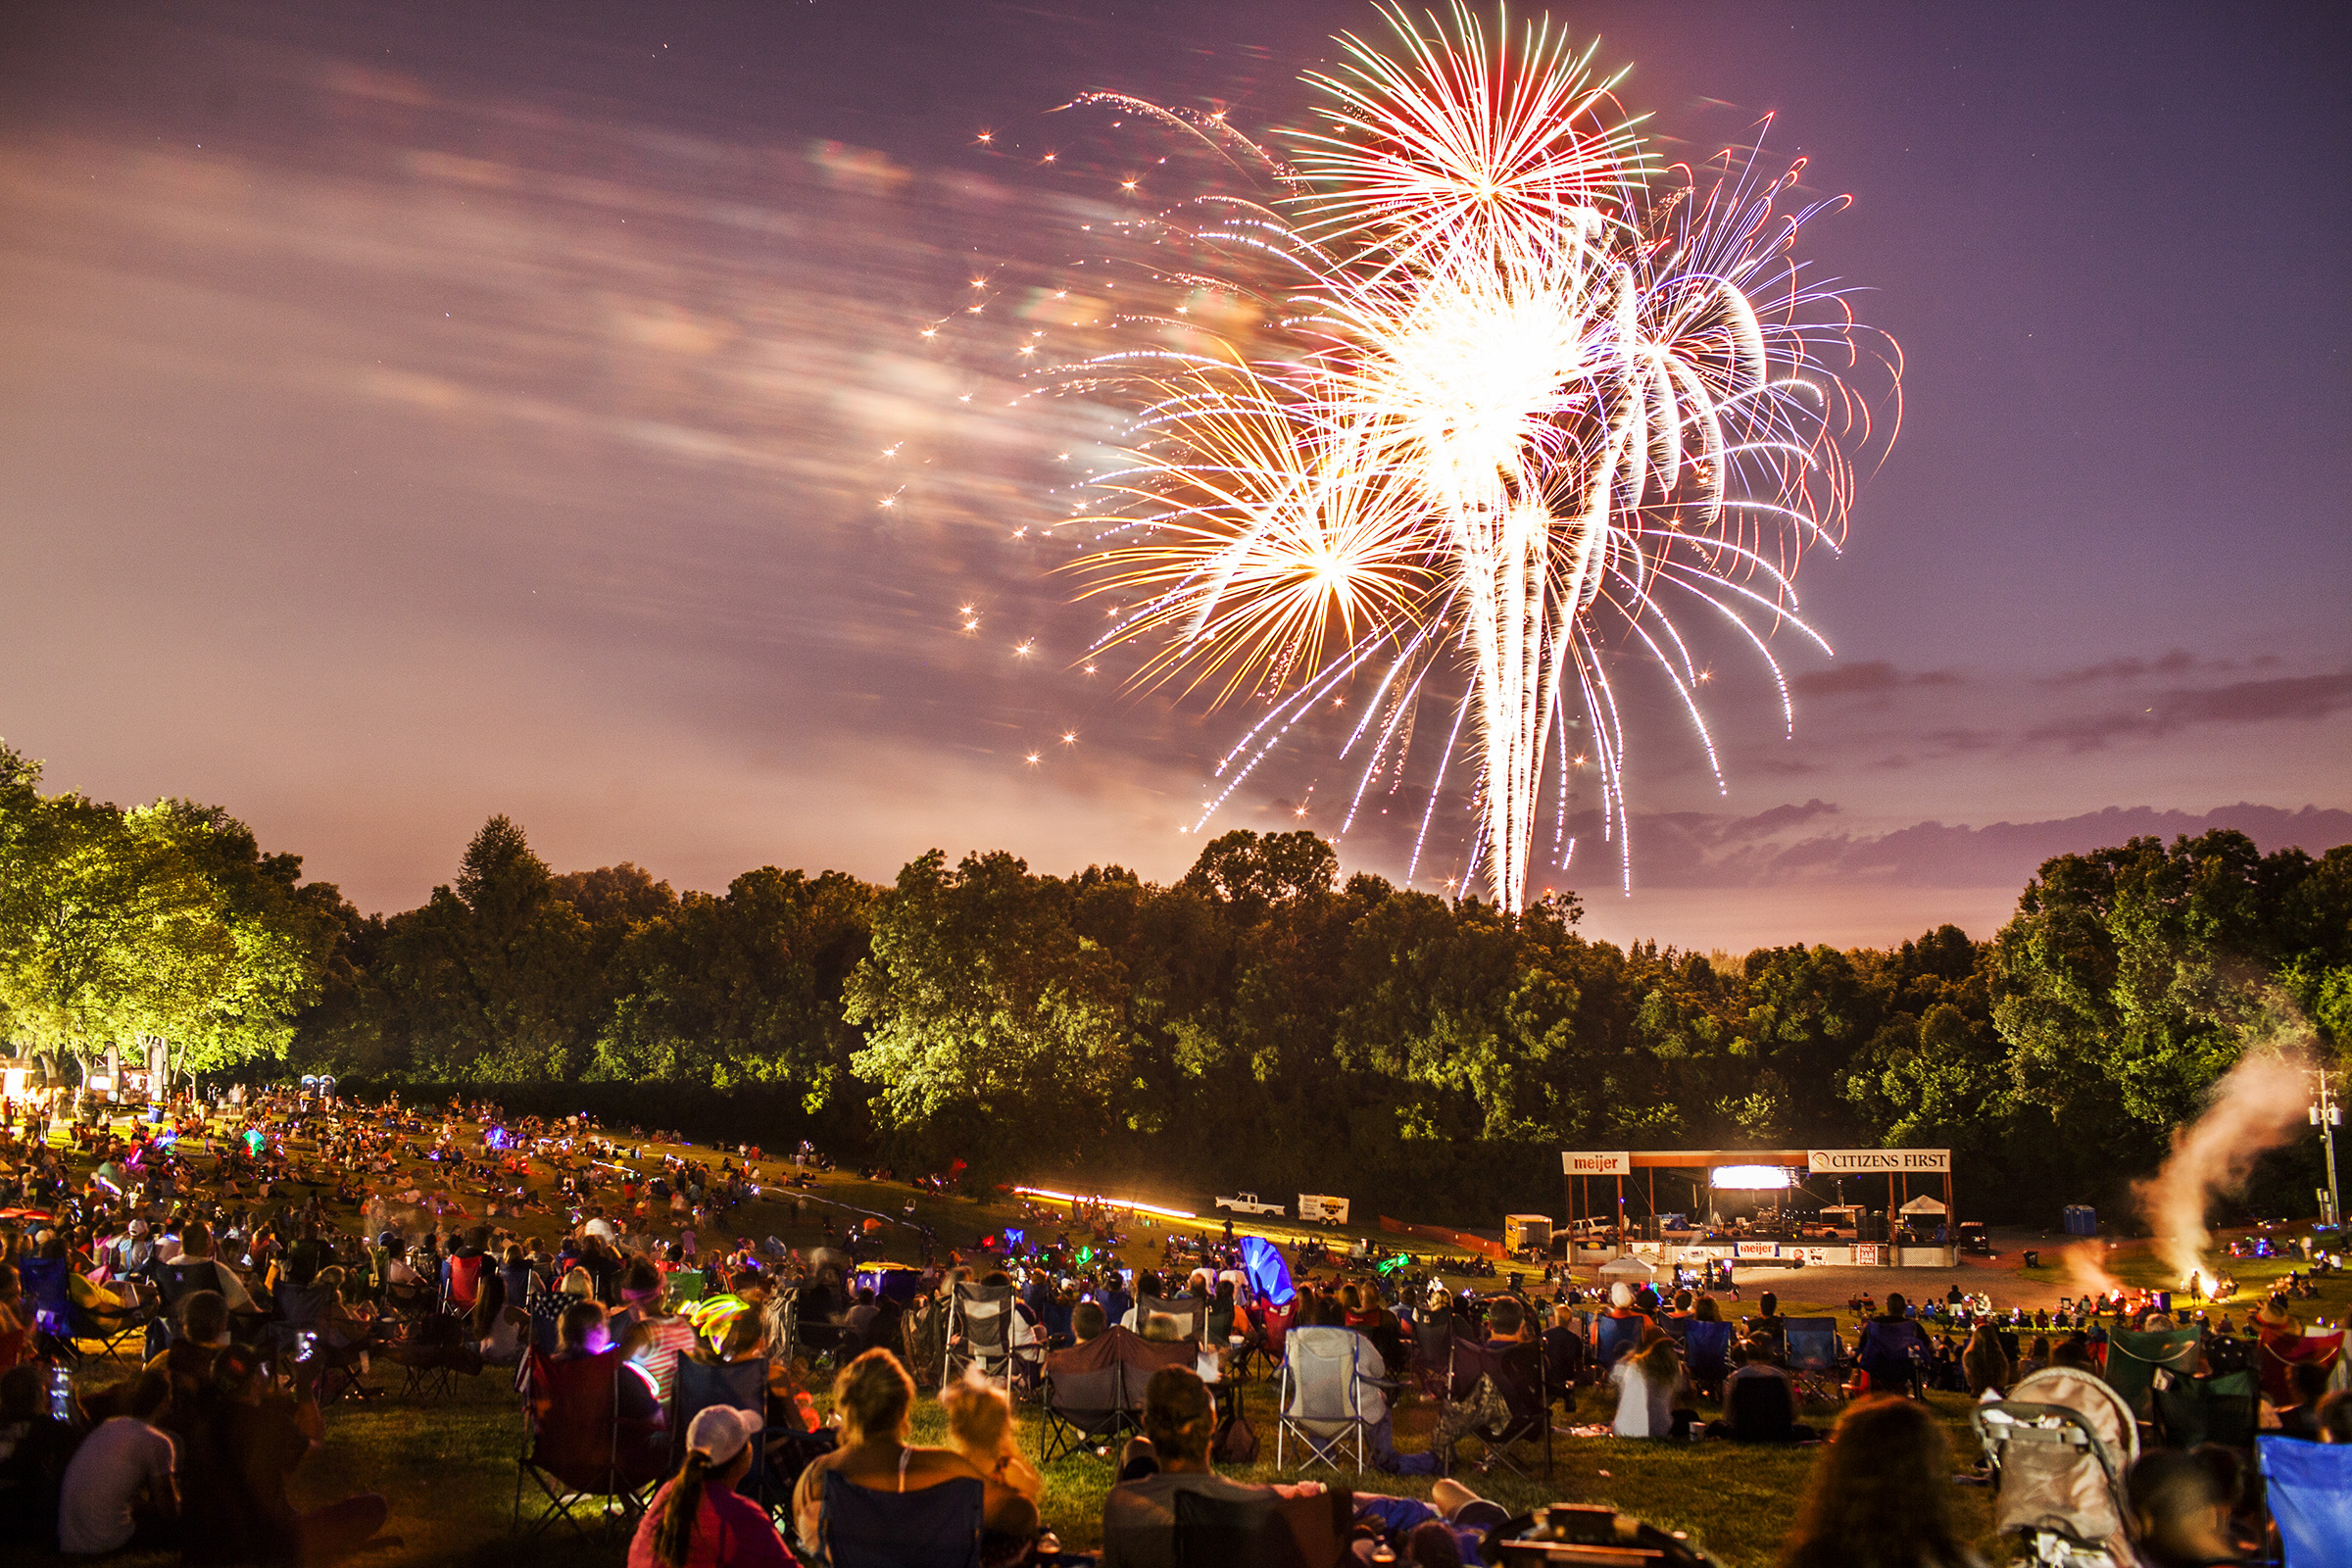 People watch fireworks go off during Thunderfest 2016 on Friday, July 1, 2016, at the National Corvette Museum.